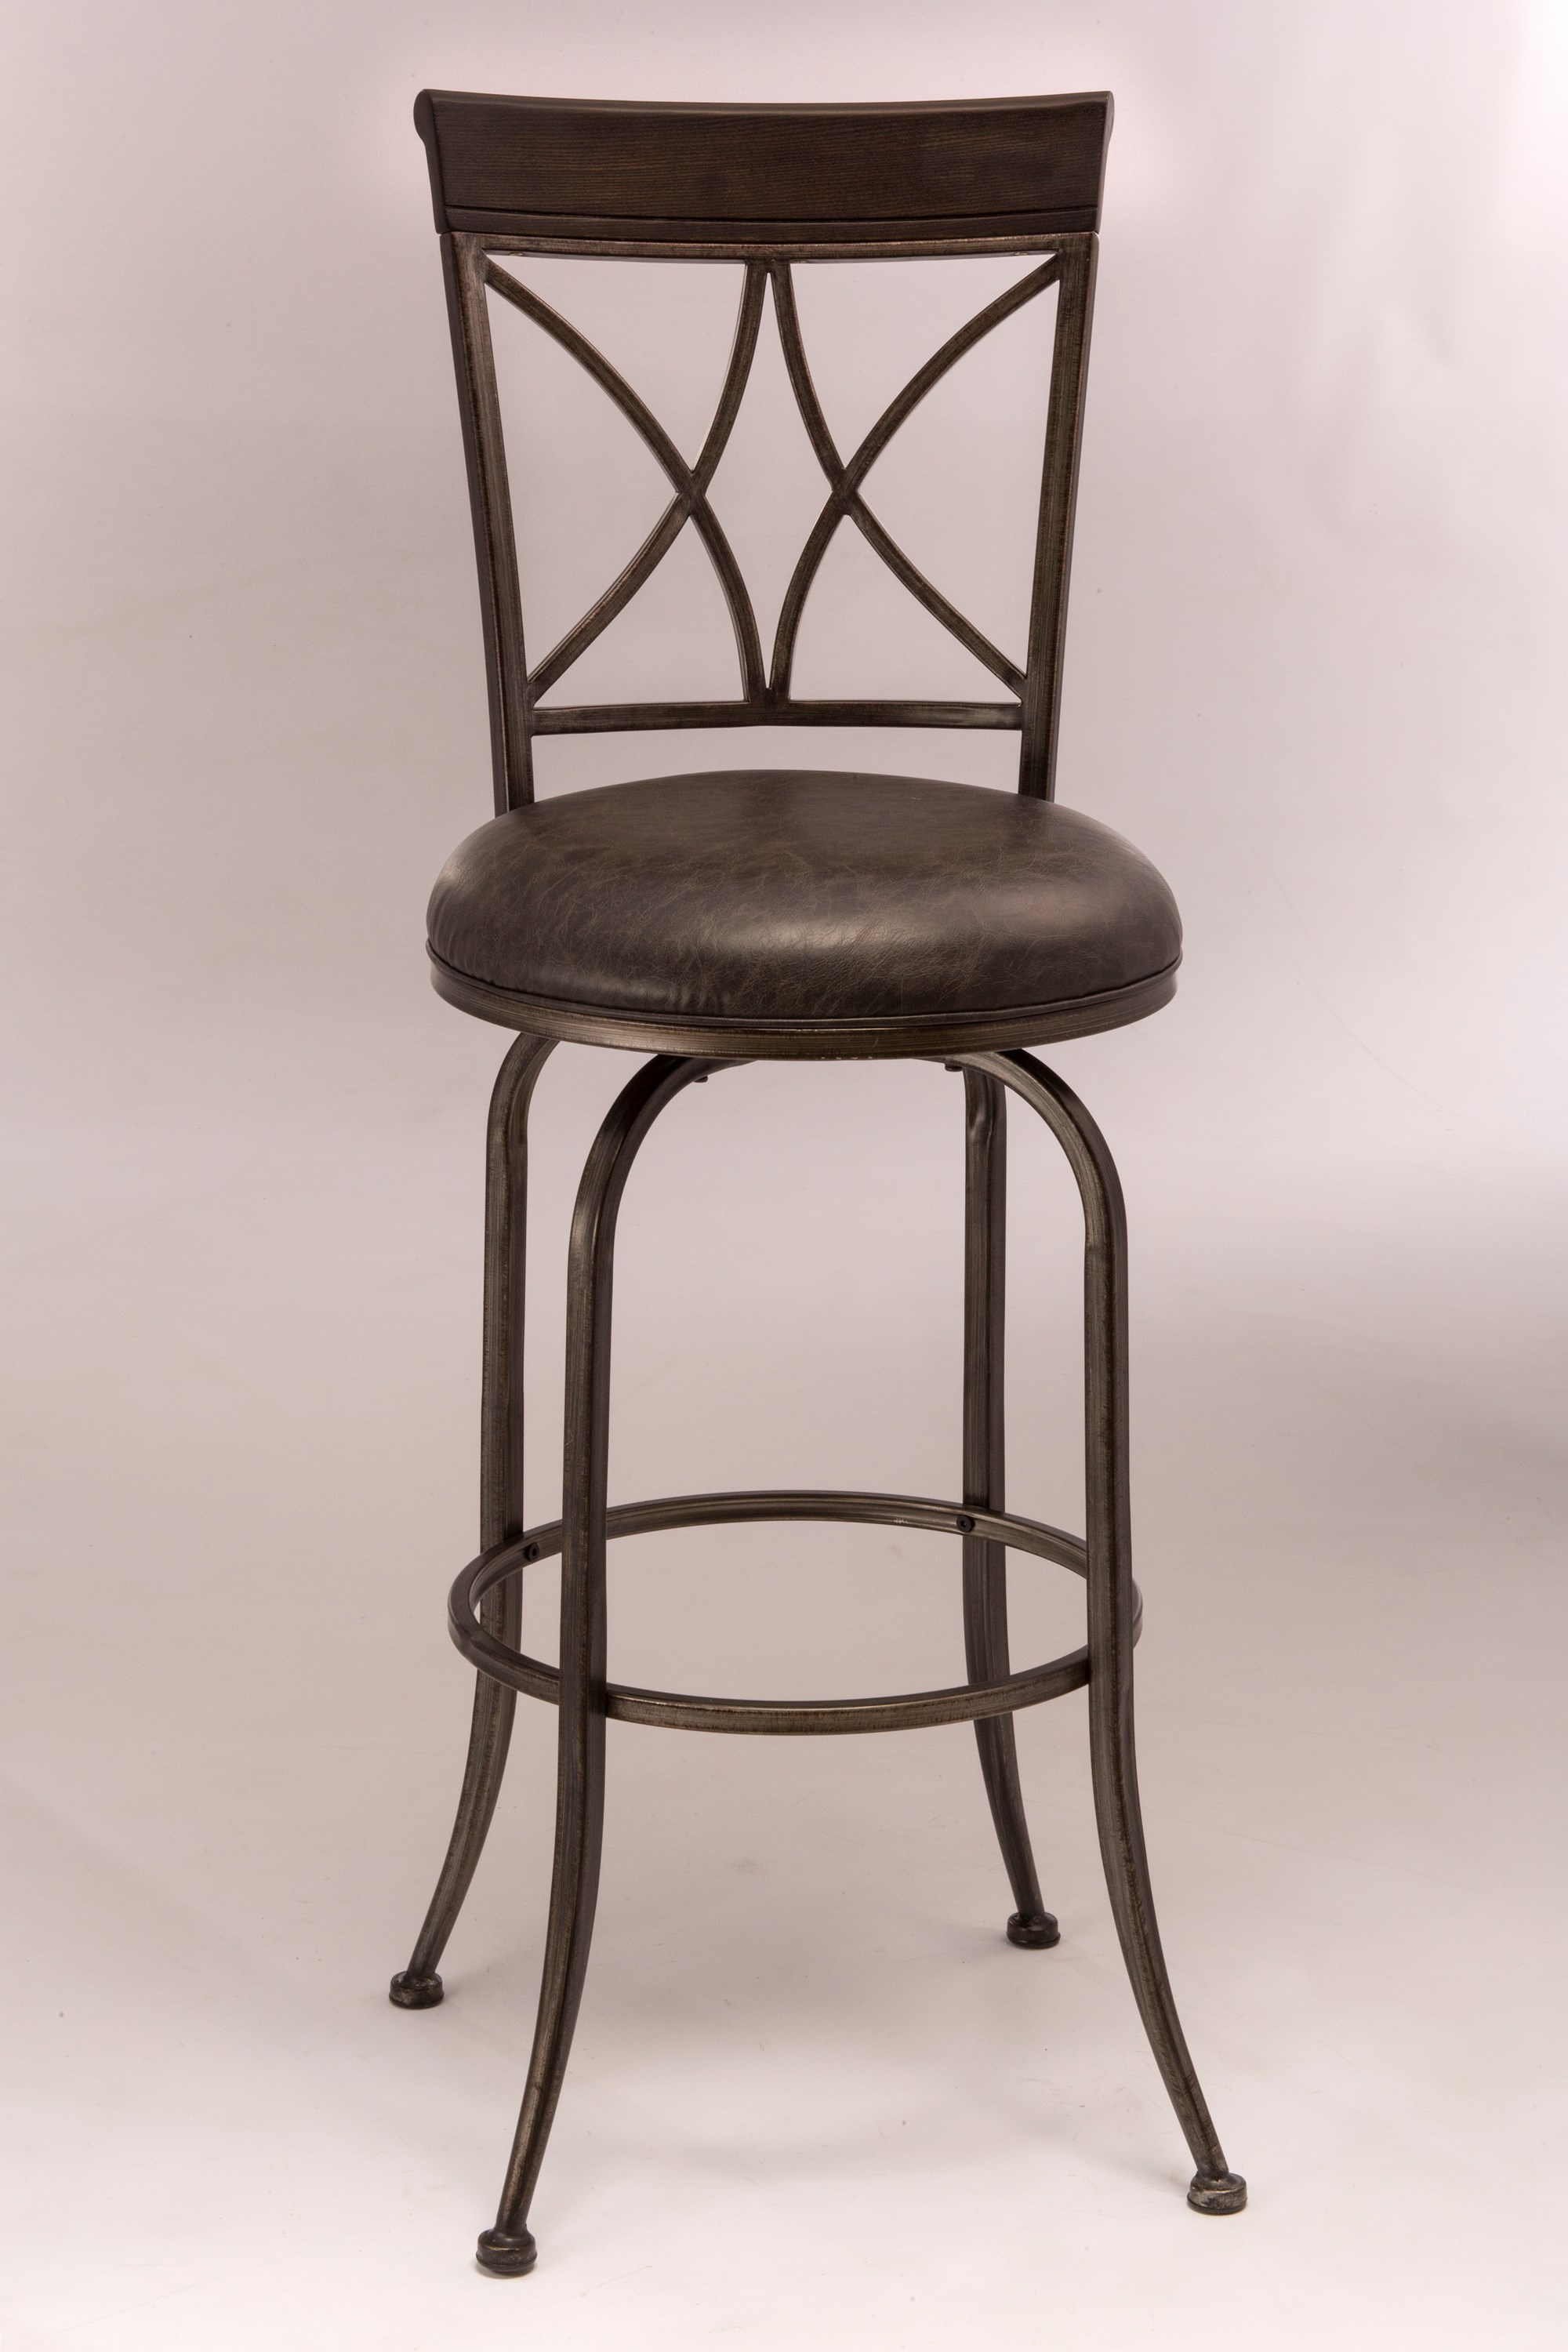 Hillsdale Metal Stools Metal Swivel Counter Height Stool  : bar20stools5772 826 b1jpgscalebothampwidth500ampheight500ampfsharpen25ampdown from www.godbyhomefurnishings.com size 500 x 500 jpeg 24kB